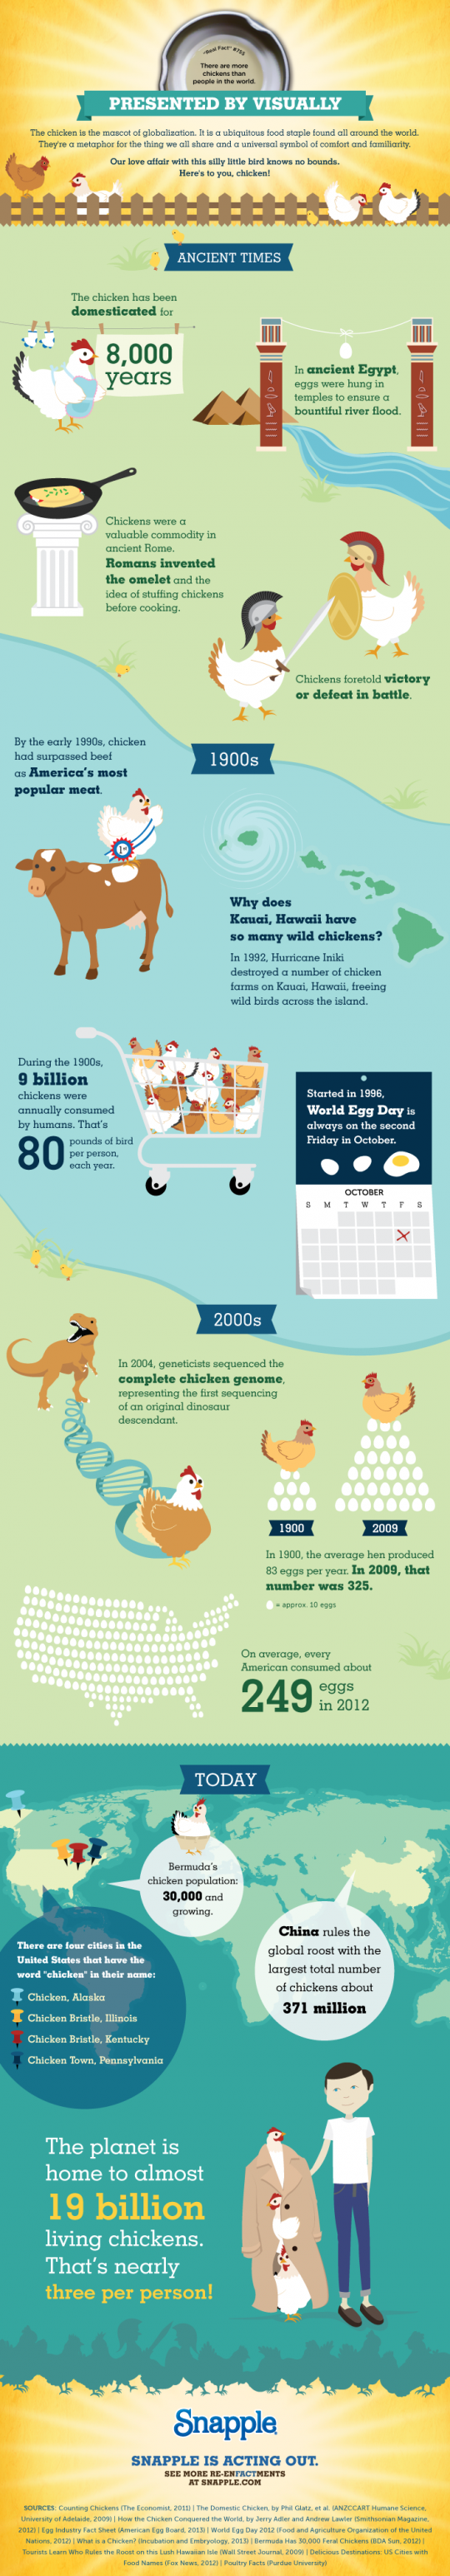 There Are More Chickens Than People in the World